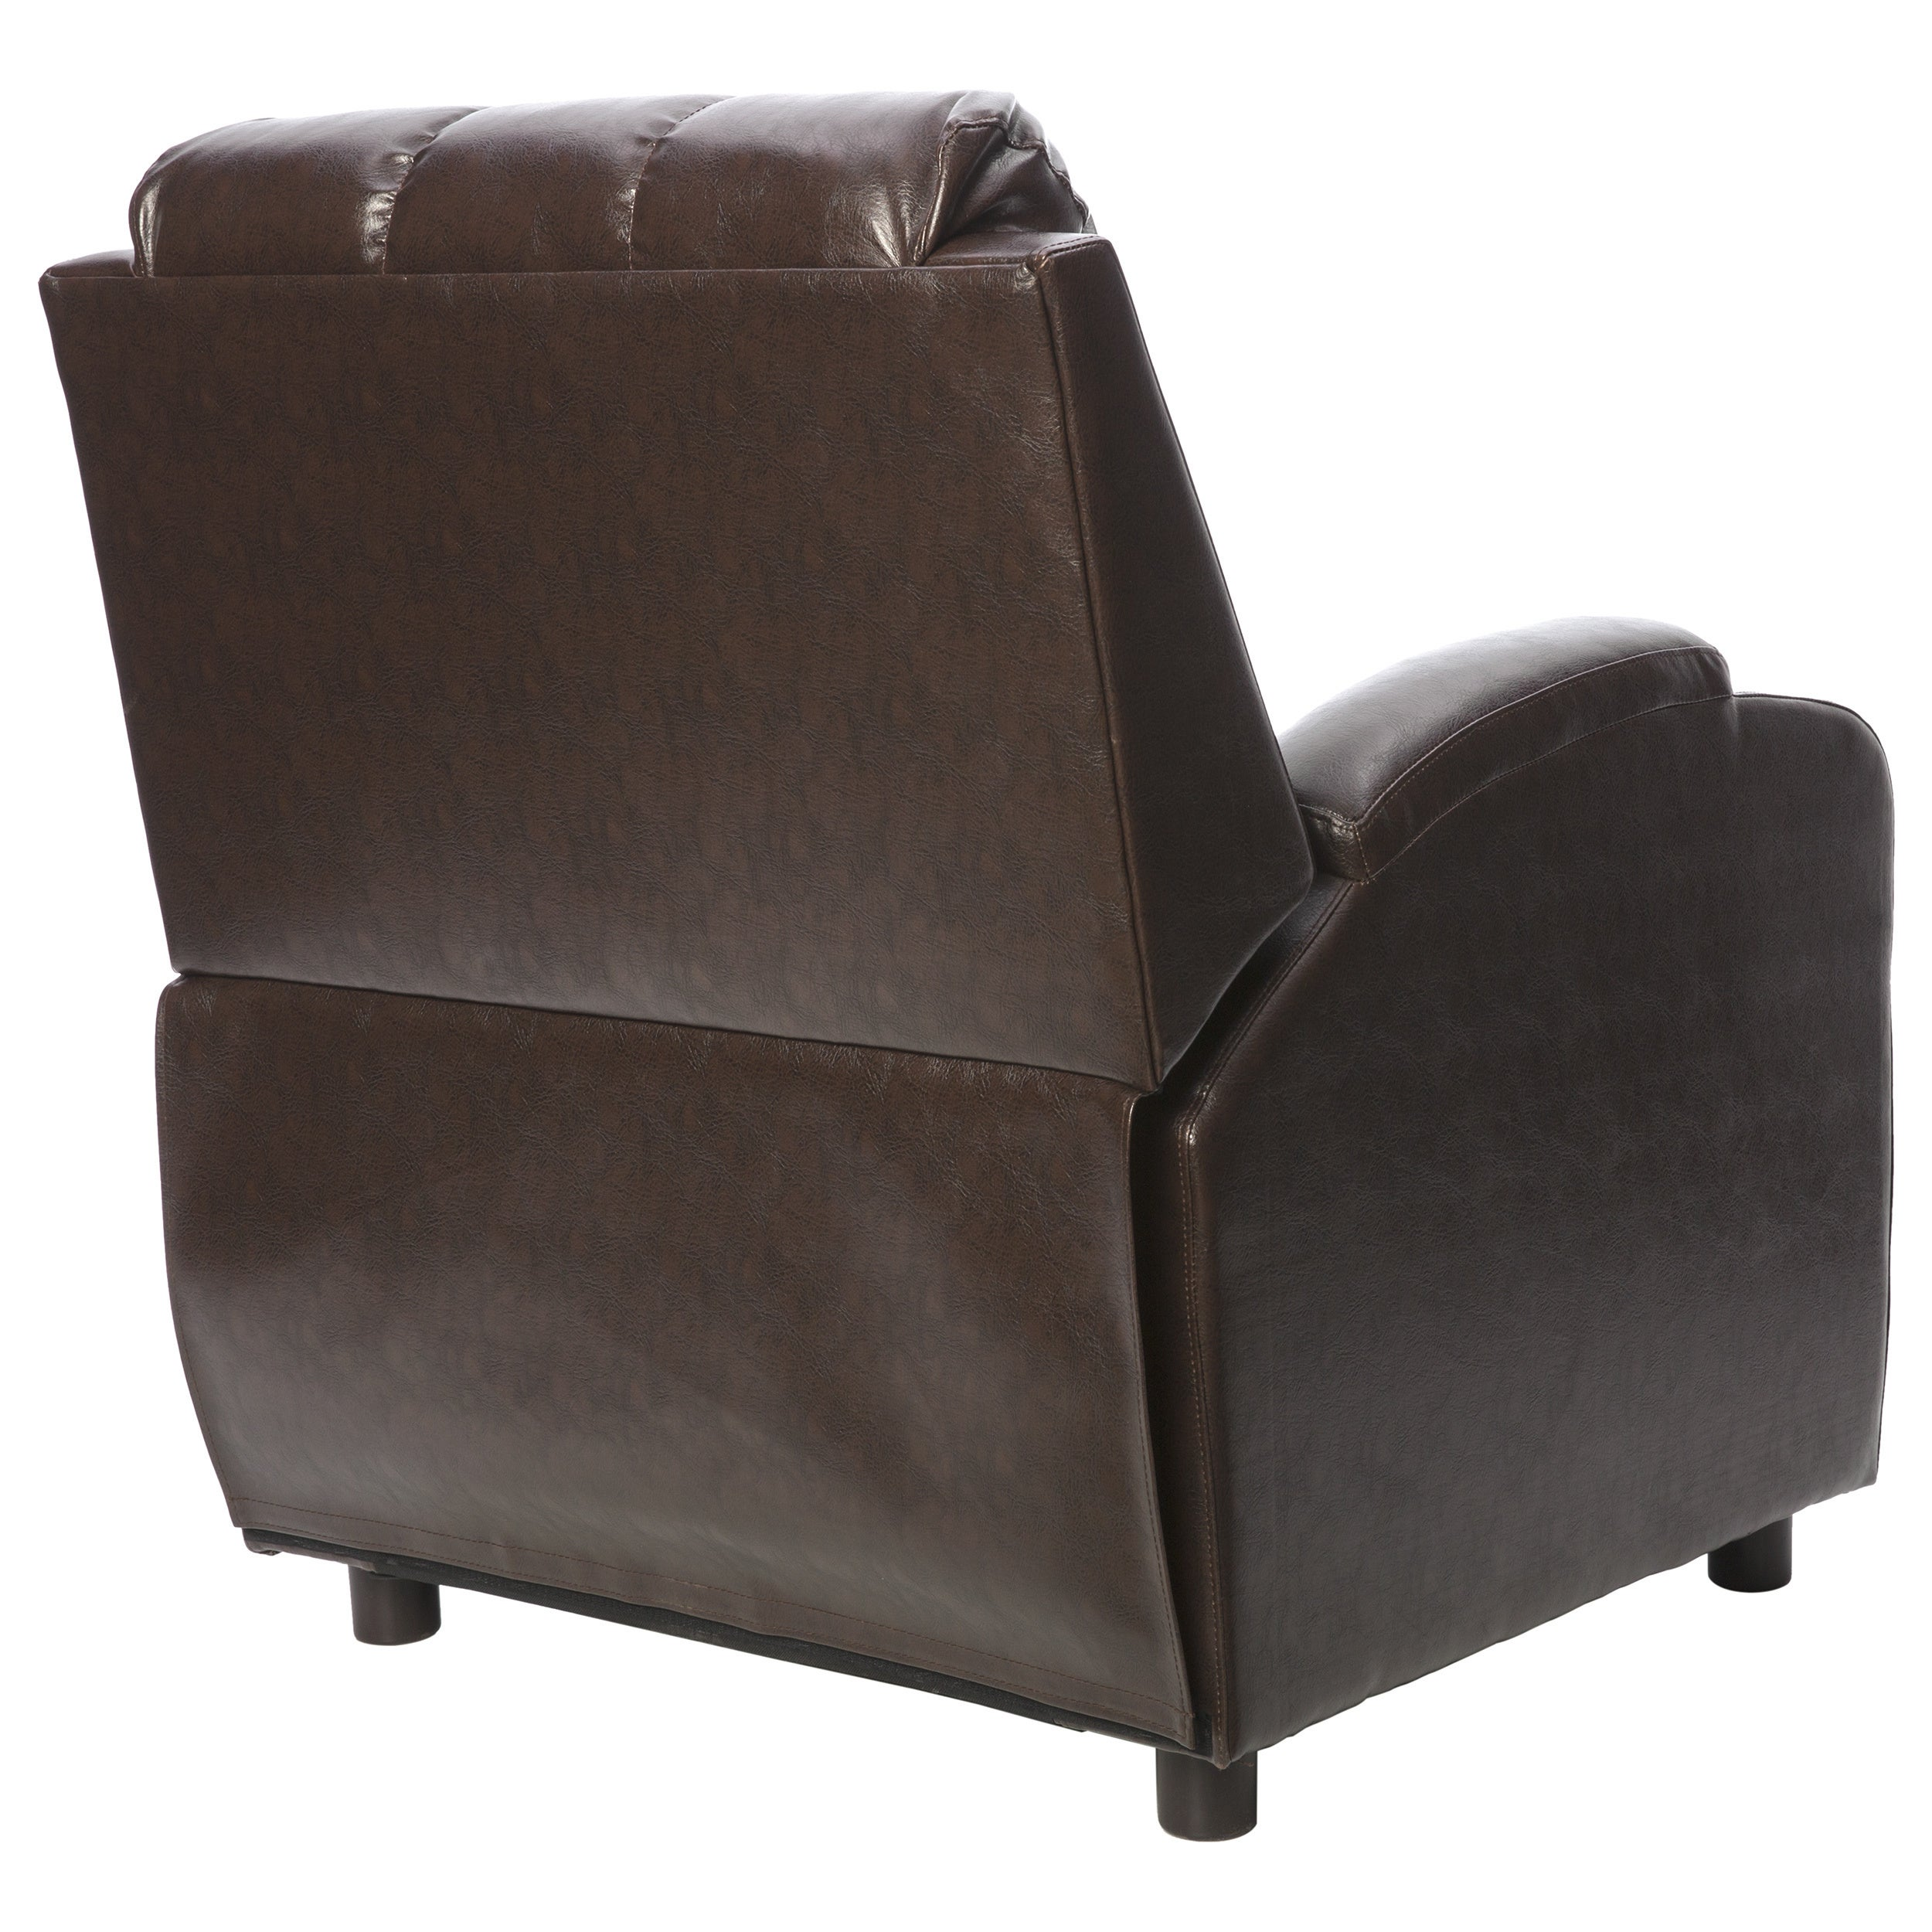 picture recliner holders of armchair w leather drink cinema gaming p chair brown sofa oscar